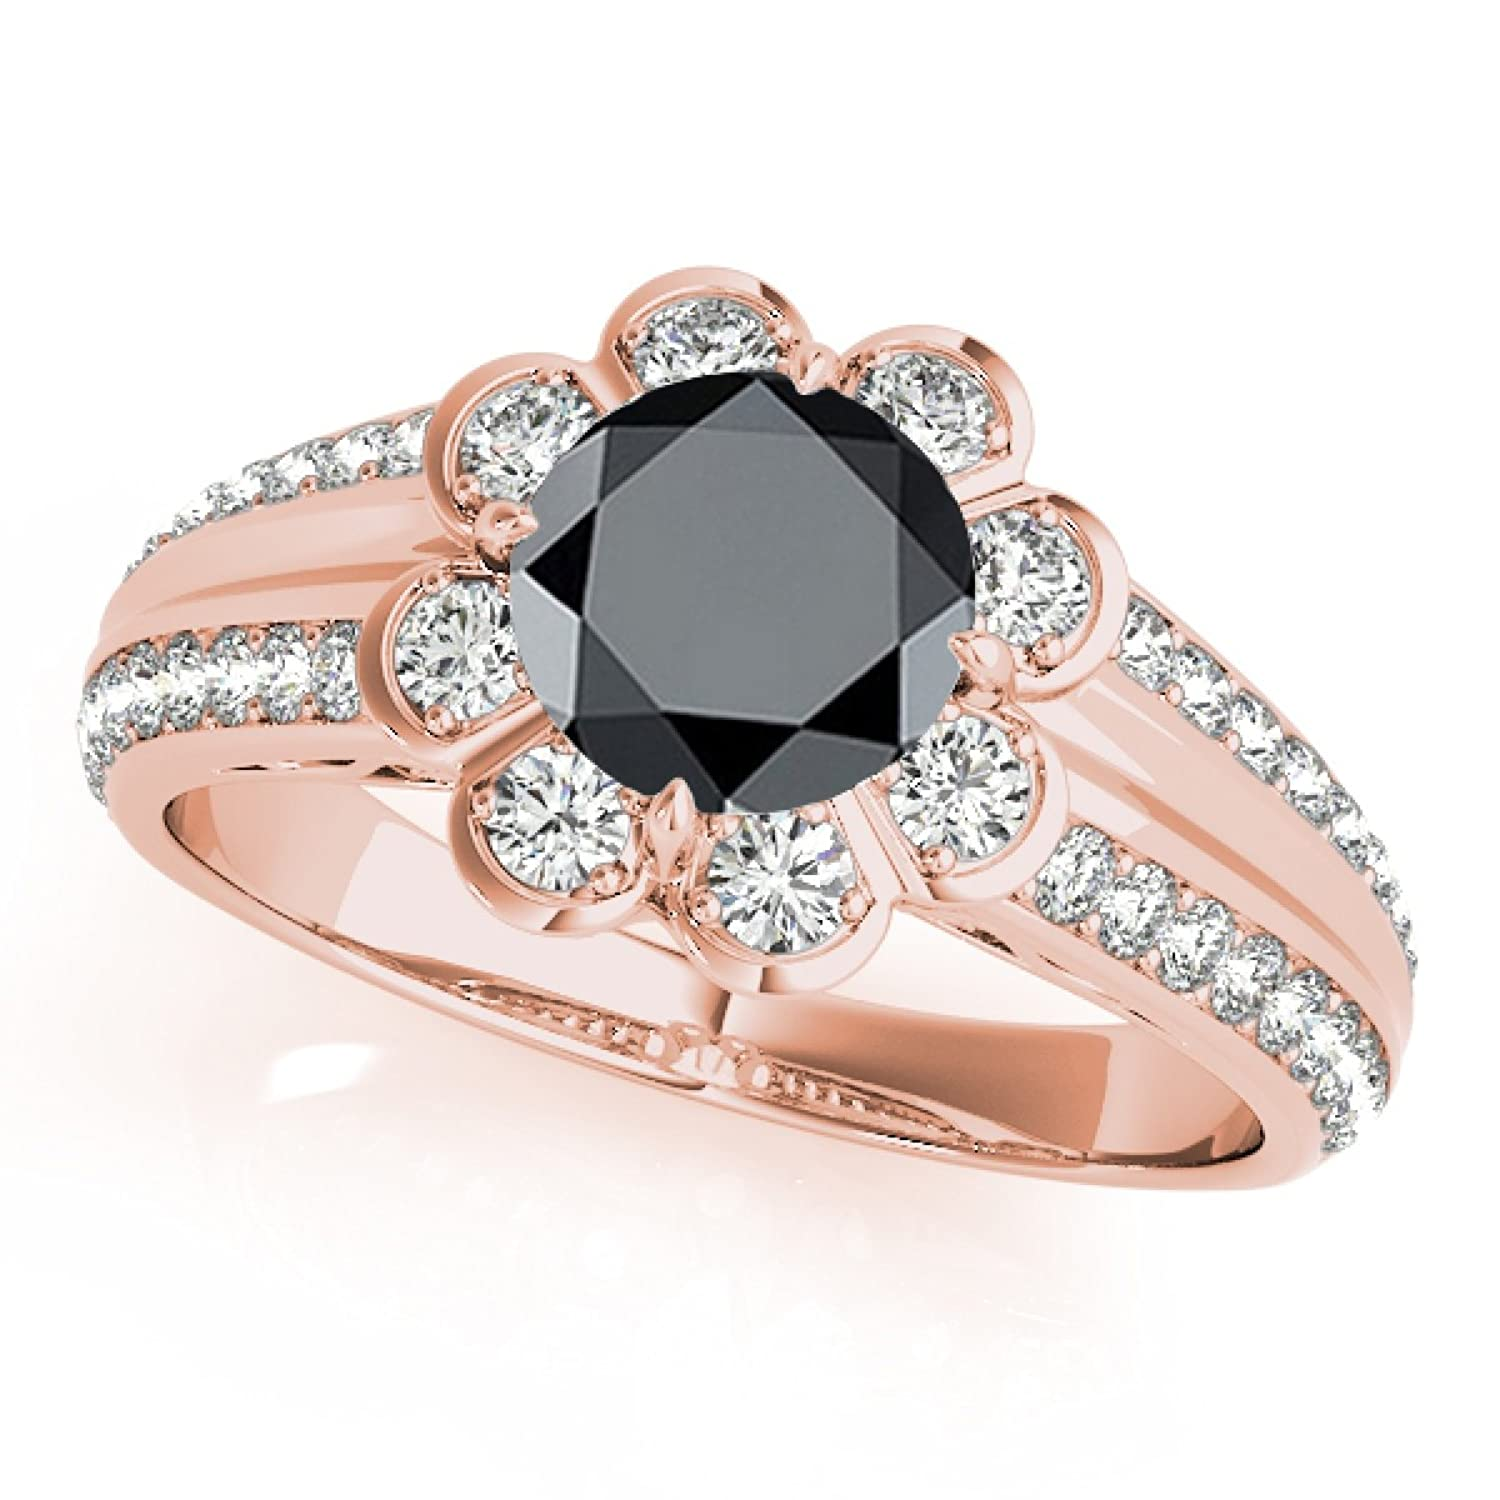 Should Our Wedding Bands Match Jewelry Wise